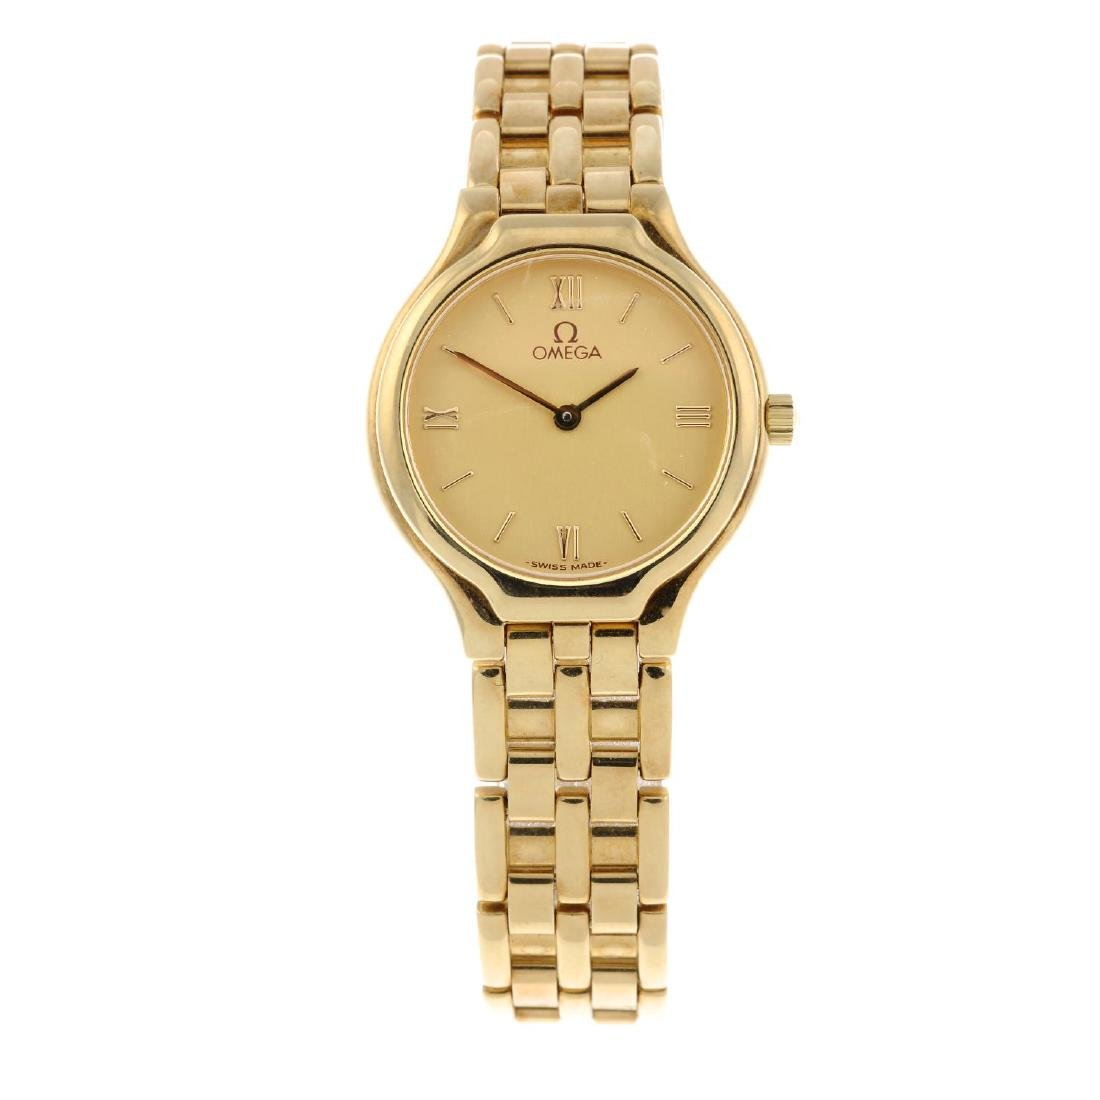 OMEGA - a lady's bracelet watch. 18ct yellow gold case.